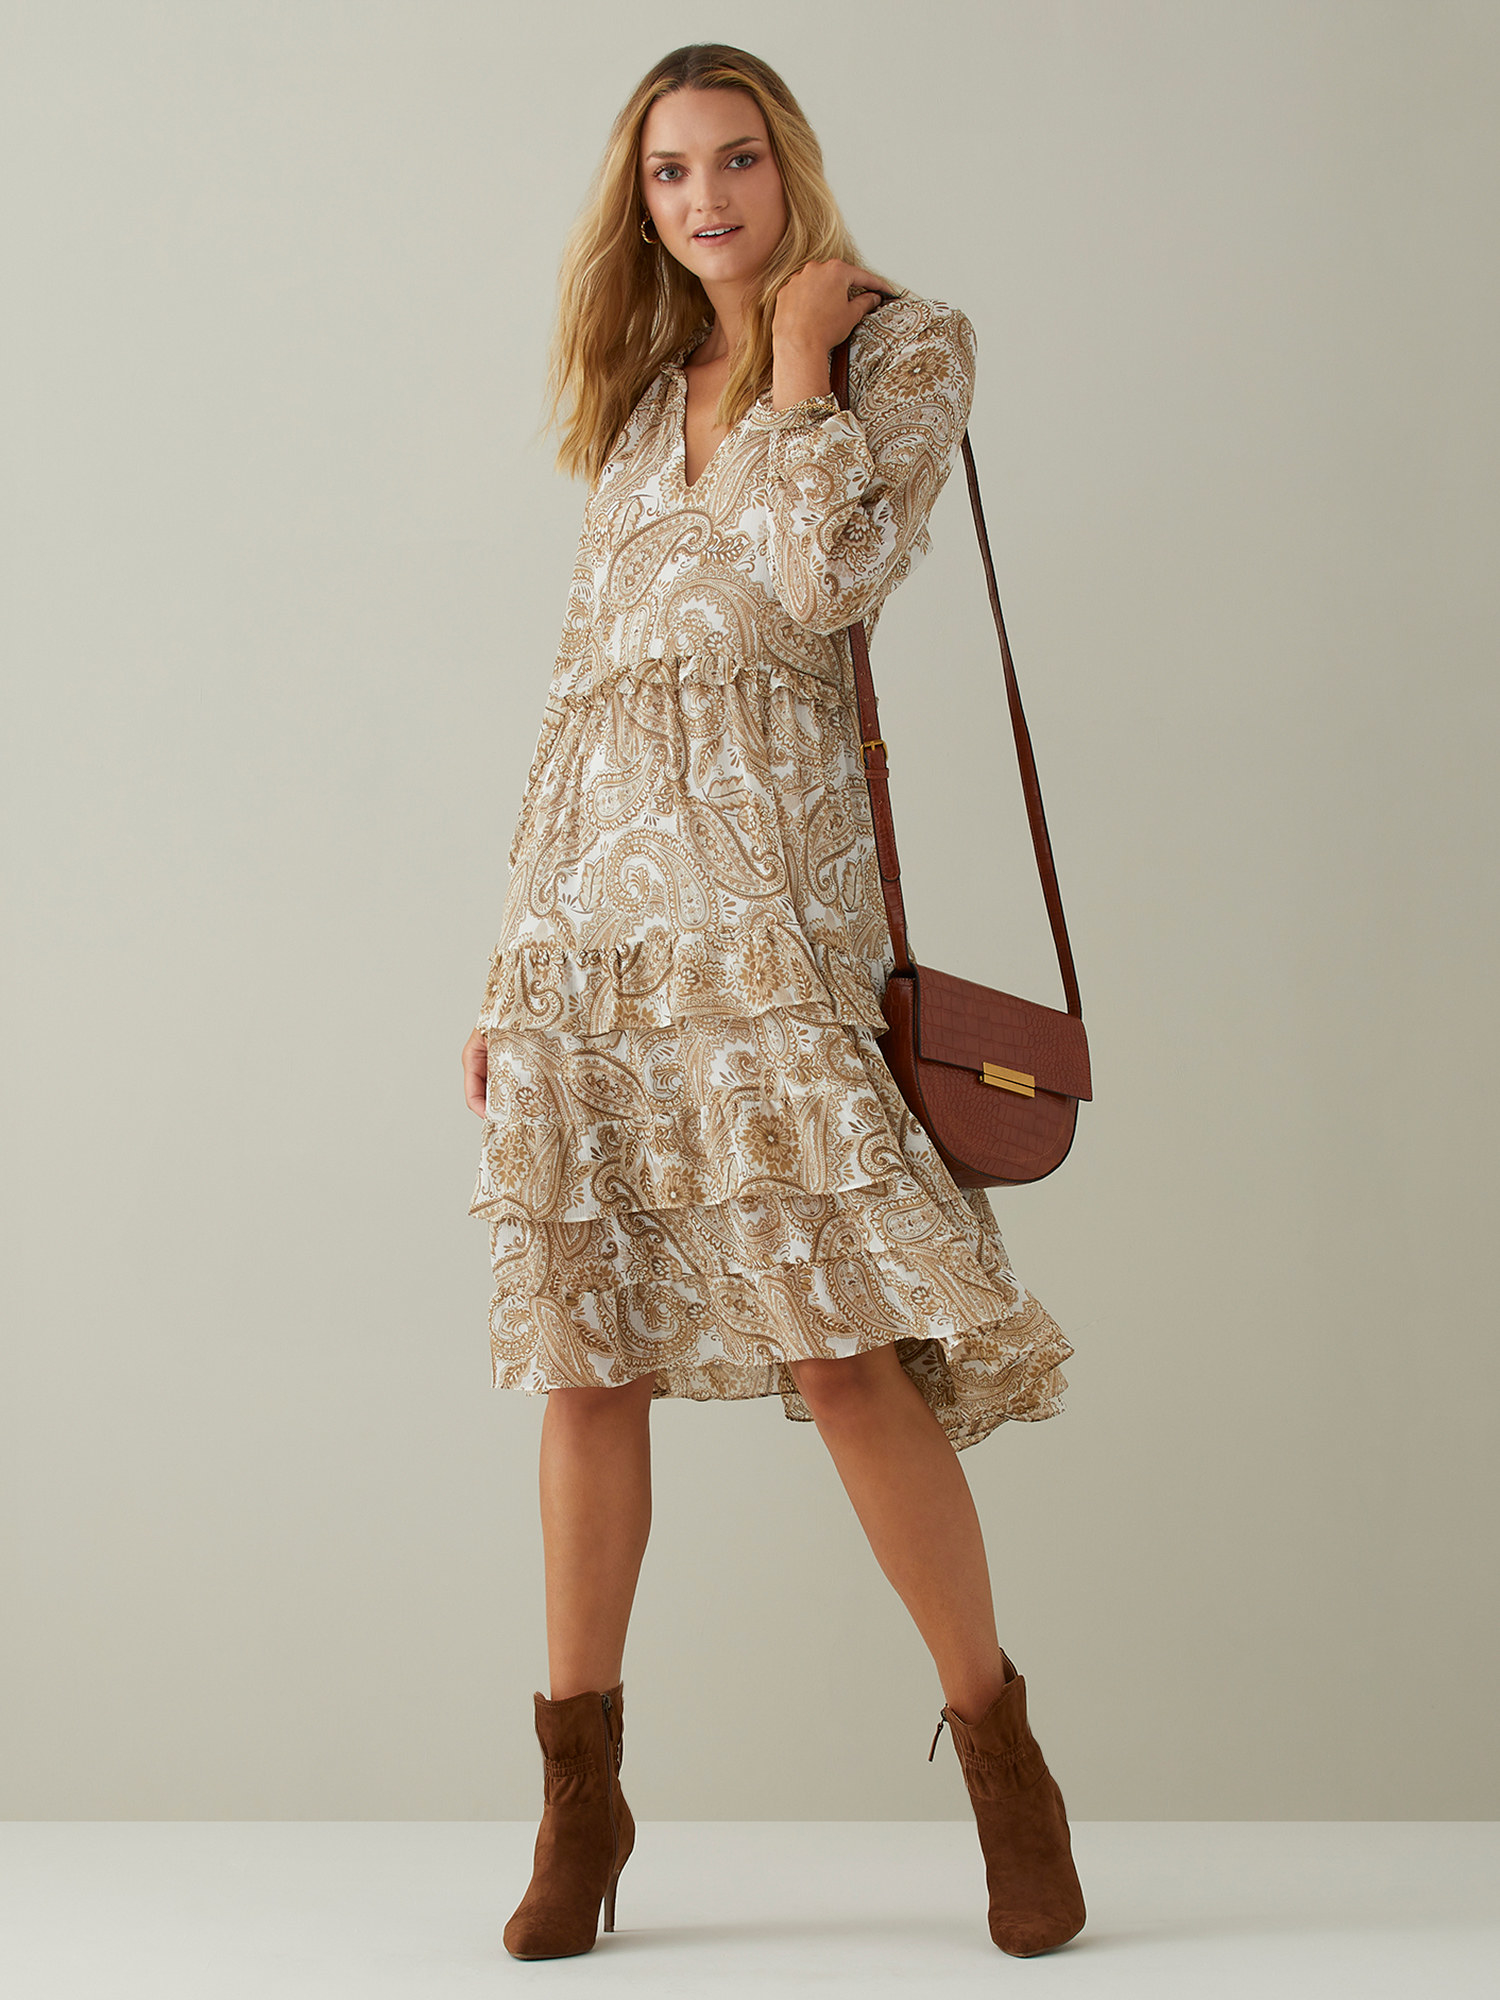 Model wearing the tan dress with paisley print